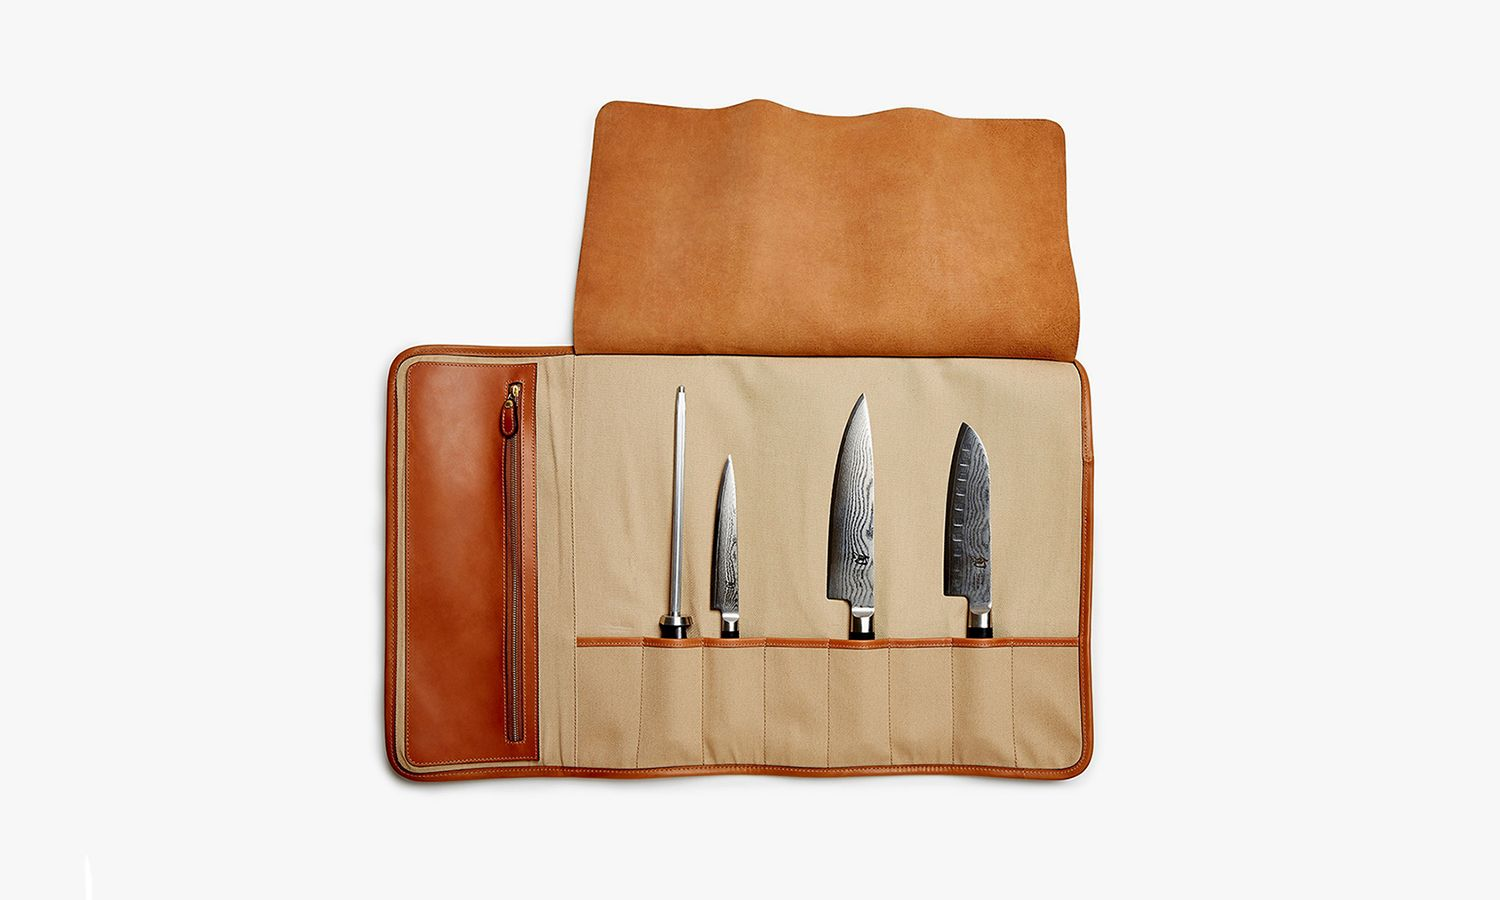 Ghurka delve into the culinary world with this leather Chef's Knife Roll featuring space for 8 knives, post and tab buckle closures and a leather handle.